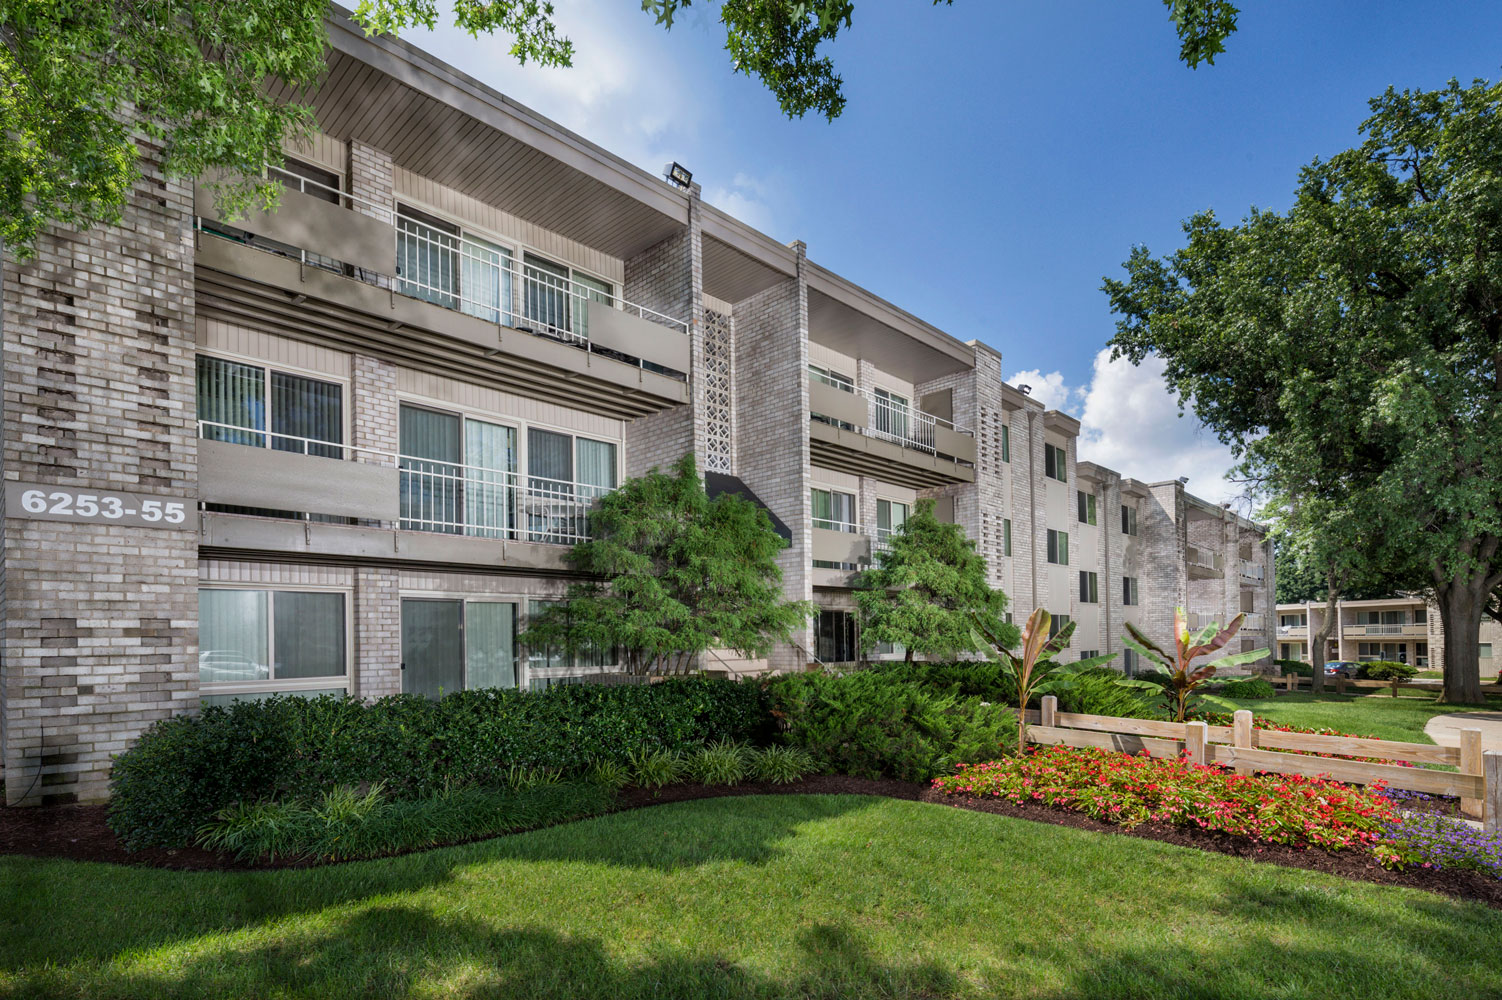 Large covered balcony or patio at Riverside Plaza Apartments in Oxon Hill, MD